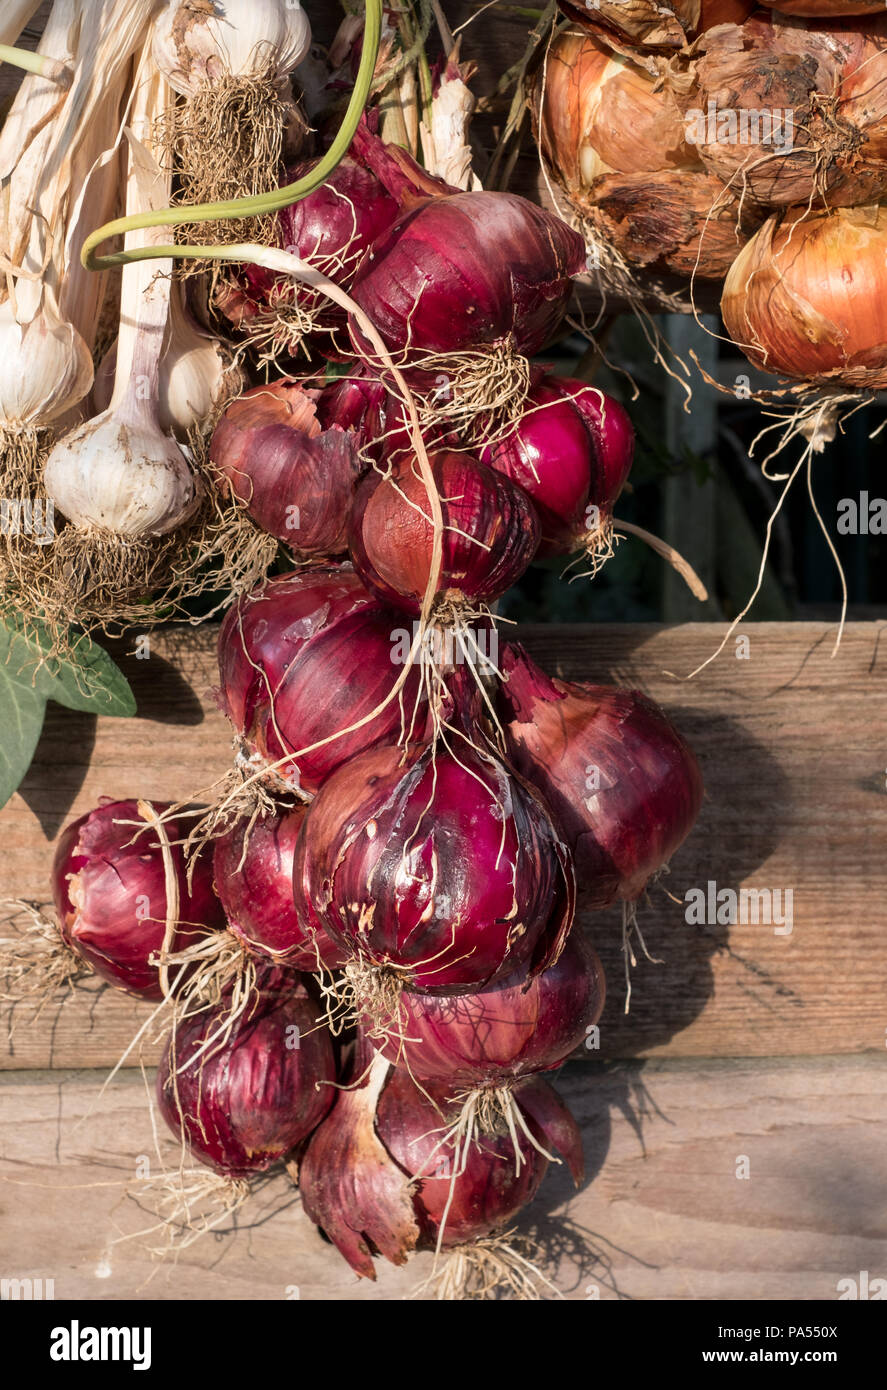 String of red onions catches the late afternoon sun. Onions are hung outside to store them for the winter. - Stock Image